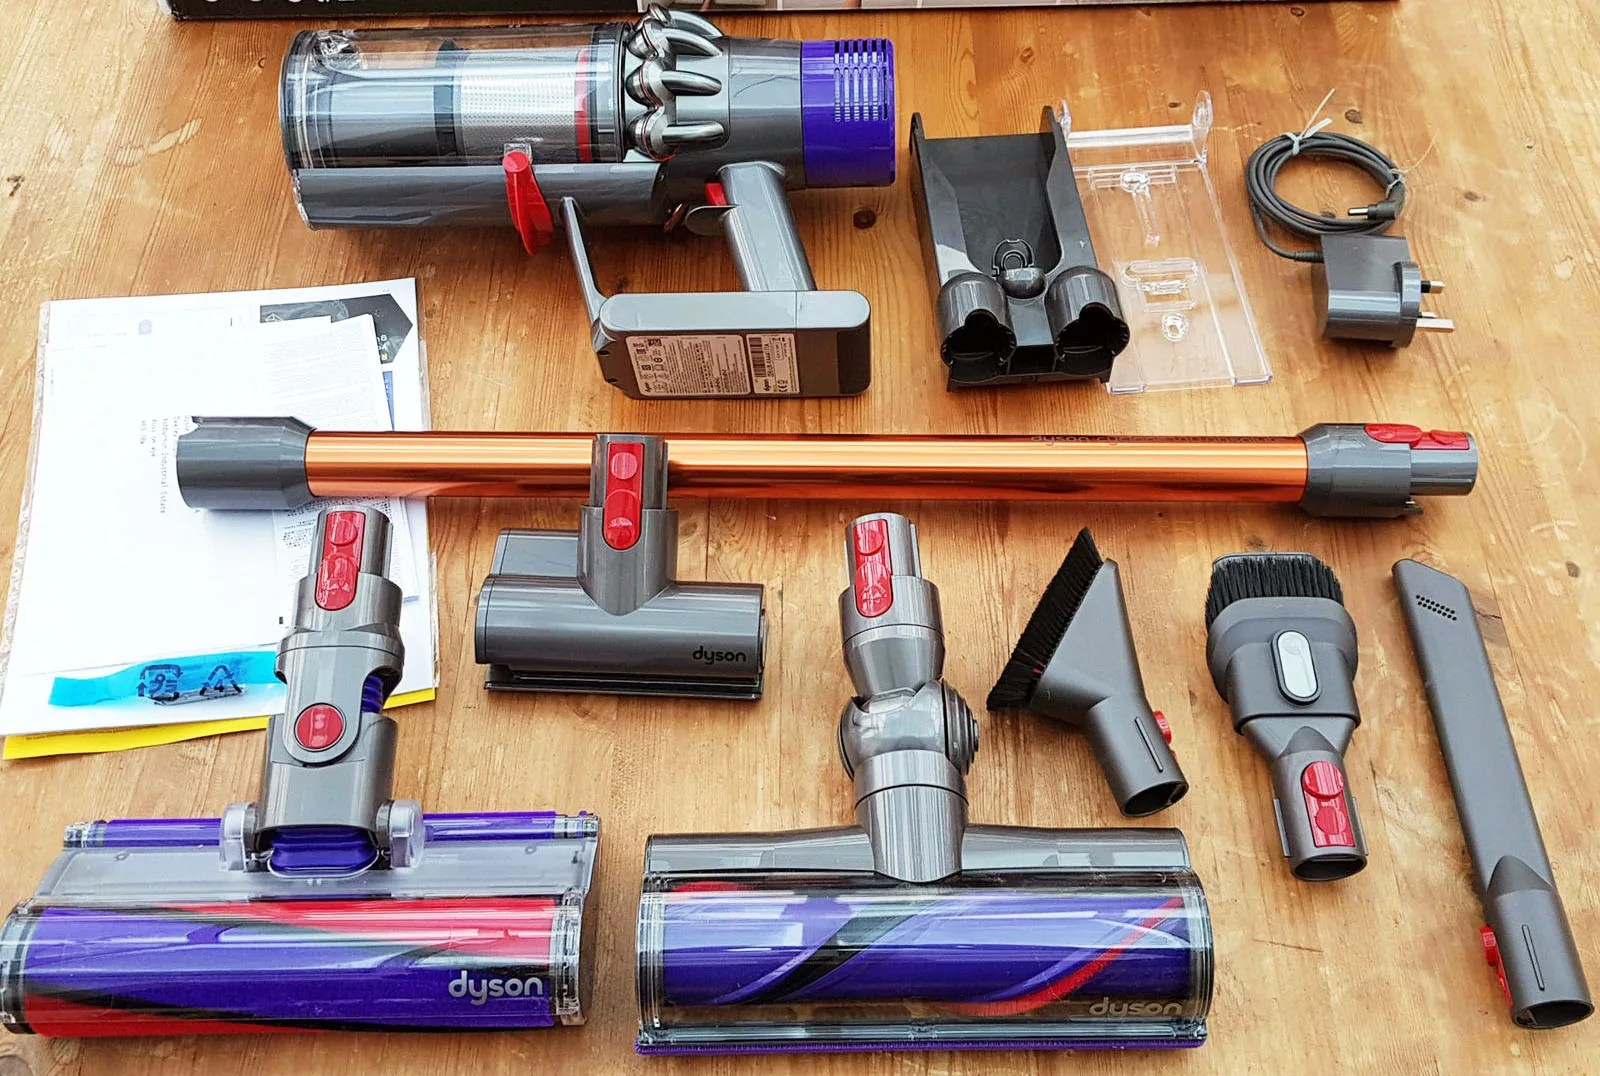 dyson cyclone v10 review and model comparison. Black Bedroom Furniture Sets. Home Design Ideas